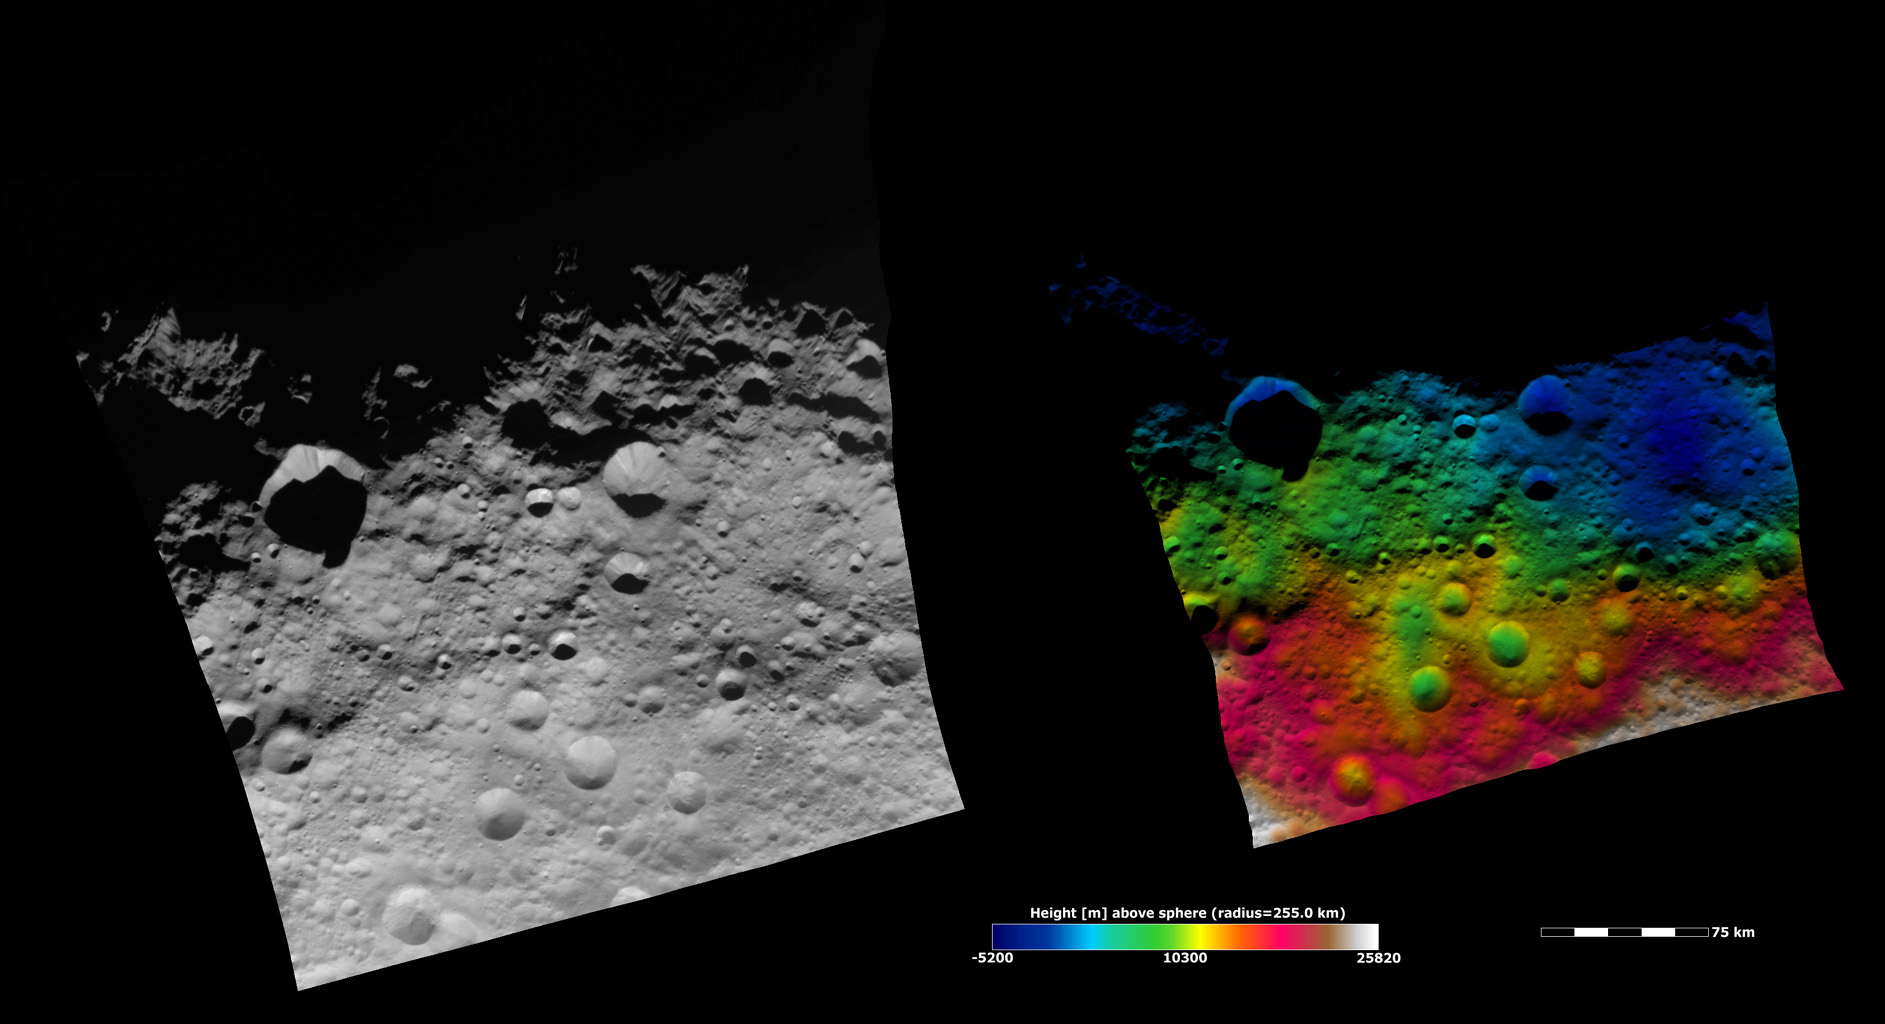 Topography of Vesta's Equatorial Region II